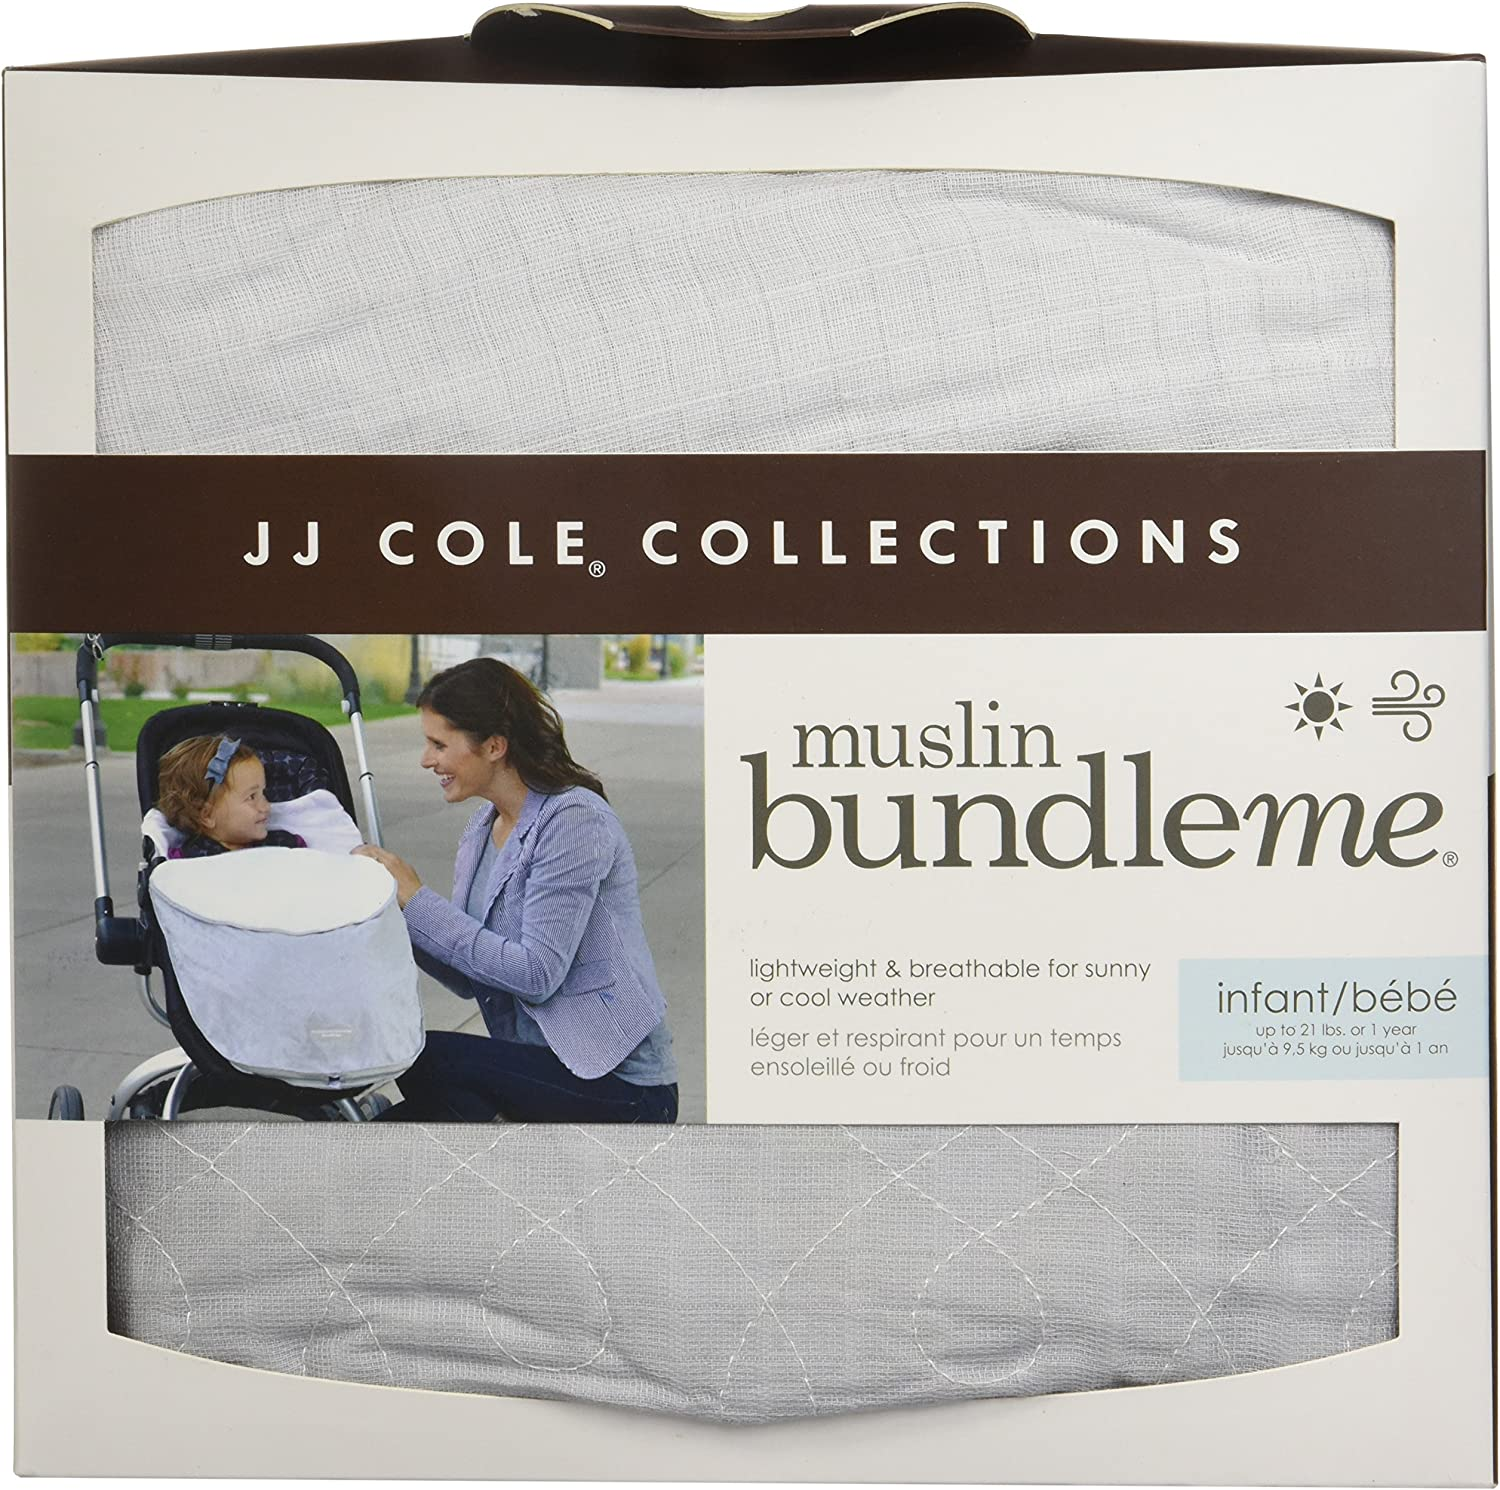 Original Bundleme Infant